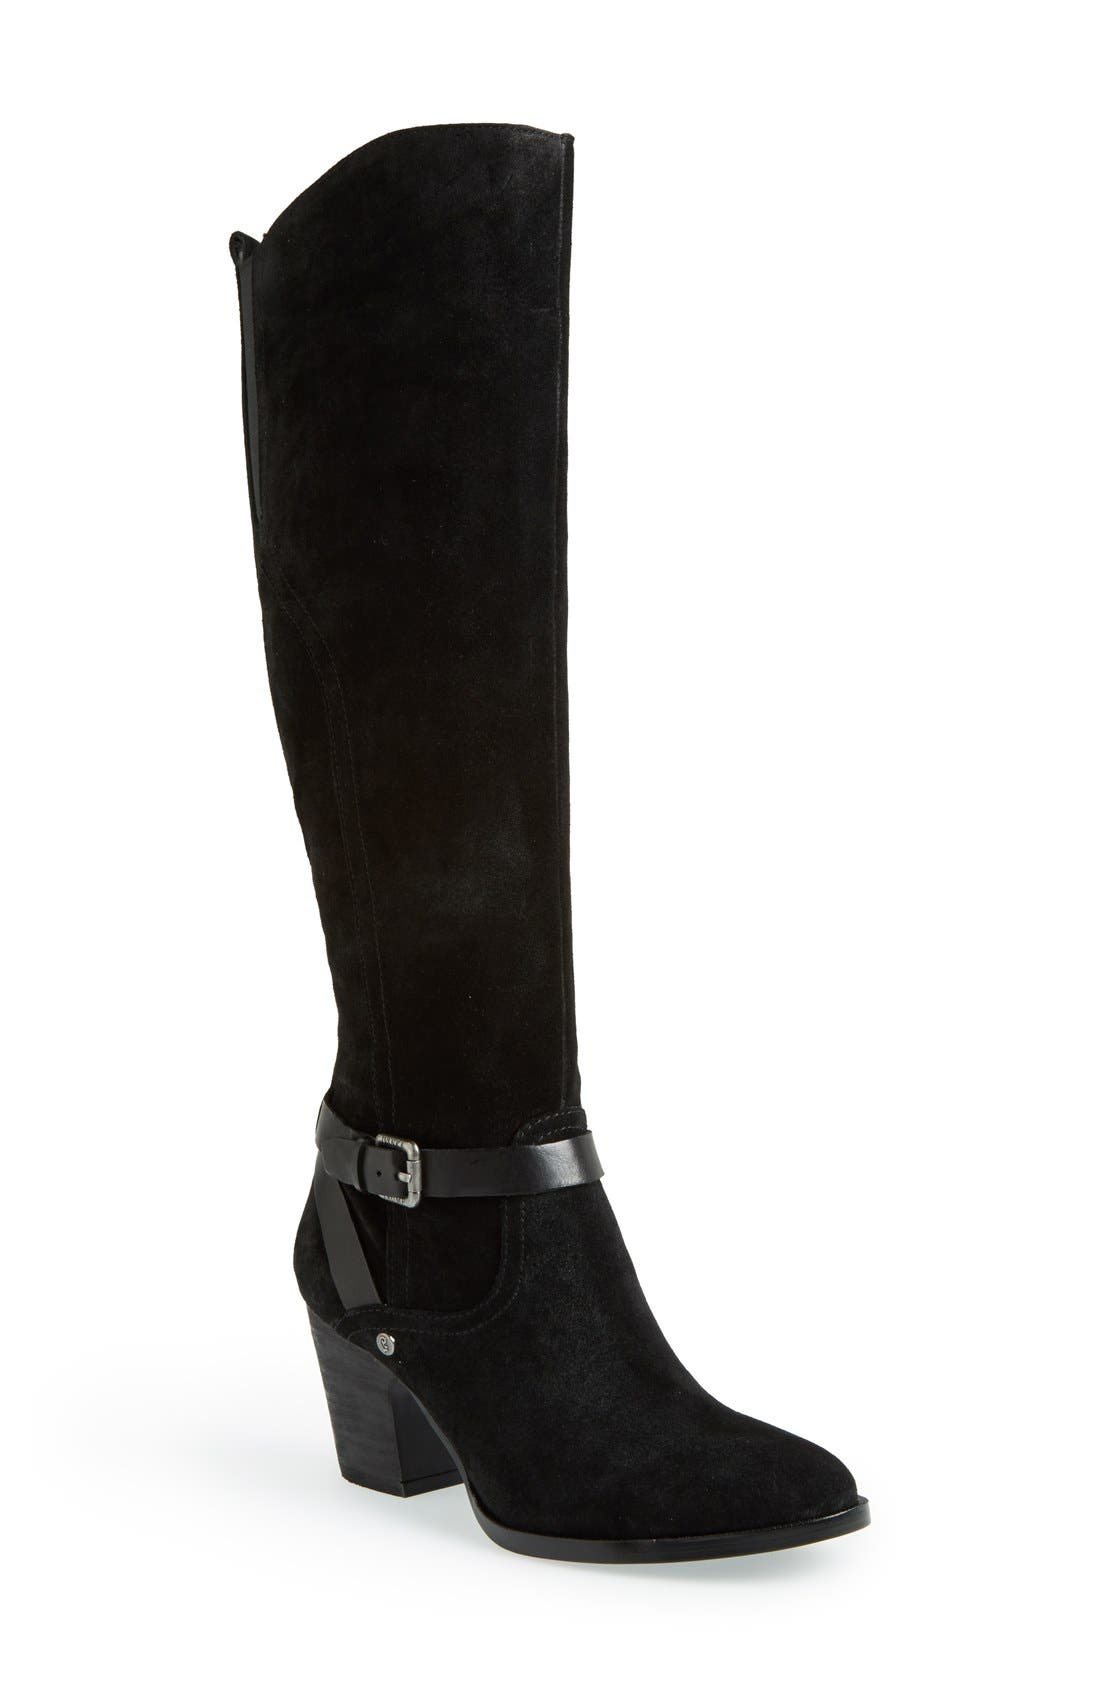 Alternate Image 1 Selected - Ivanka Trump 'Tarrilyn' Knee High Suede Boot (Women)